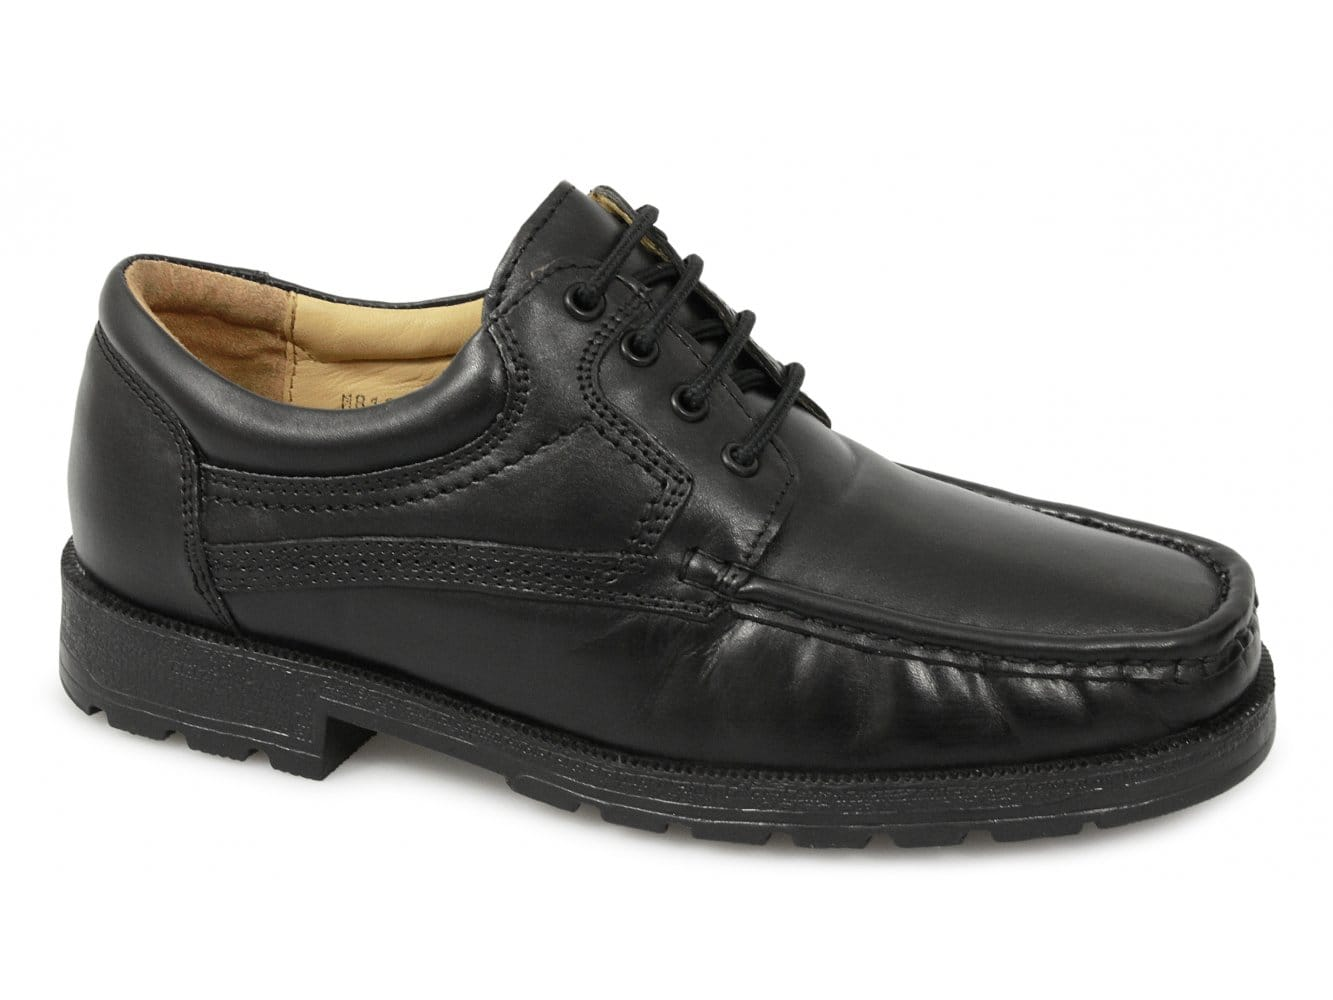 8142dbadd58 Roamers DANE Mens Lace-Up Apron Gibson Shoes Black